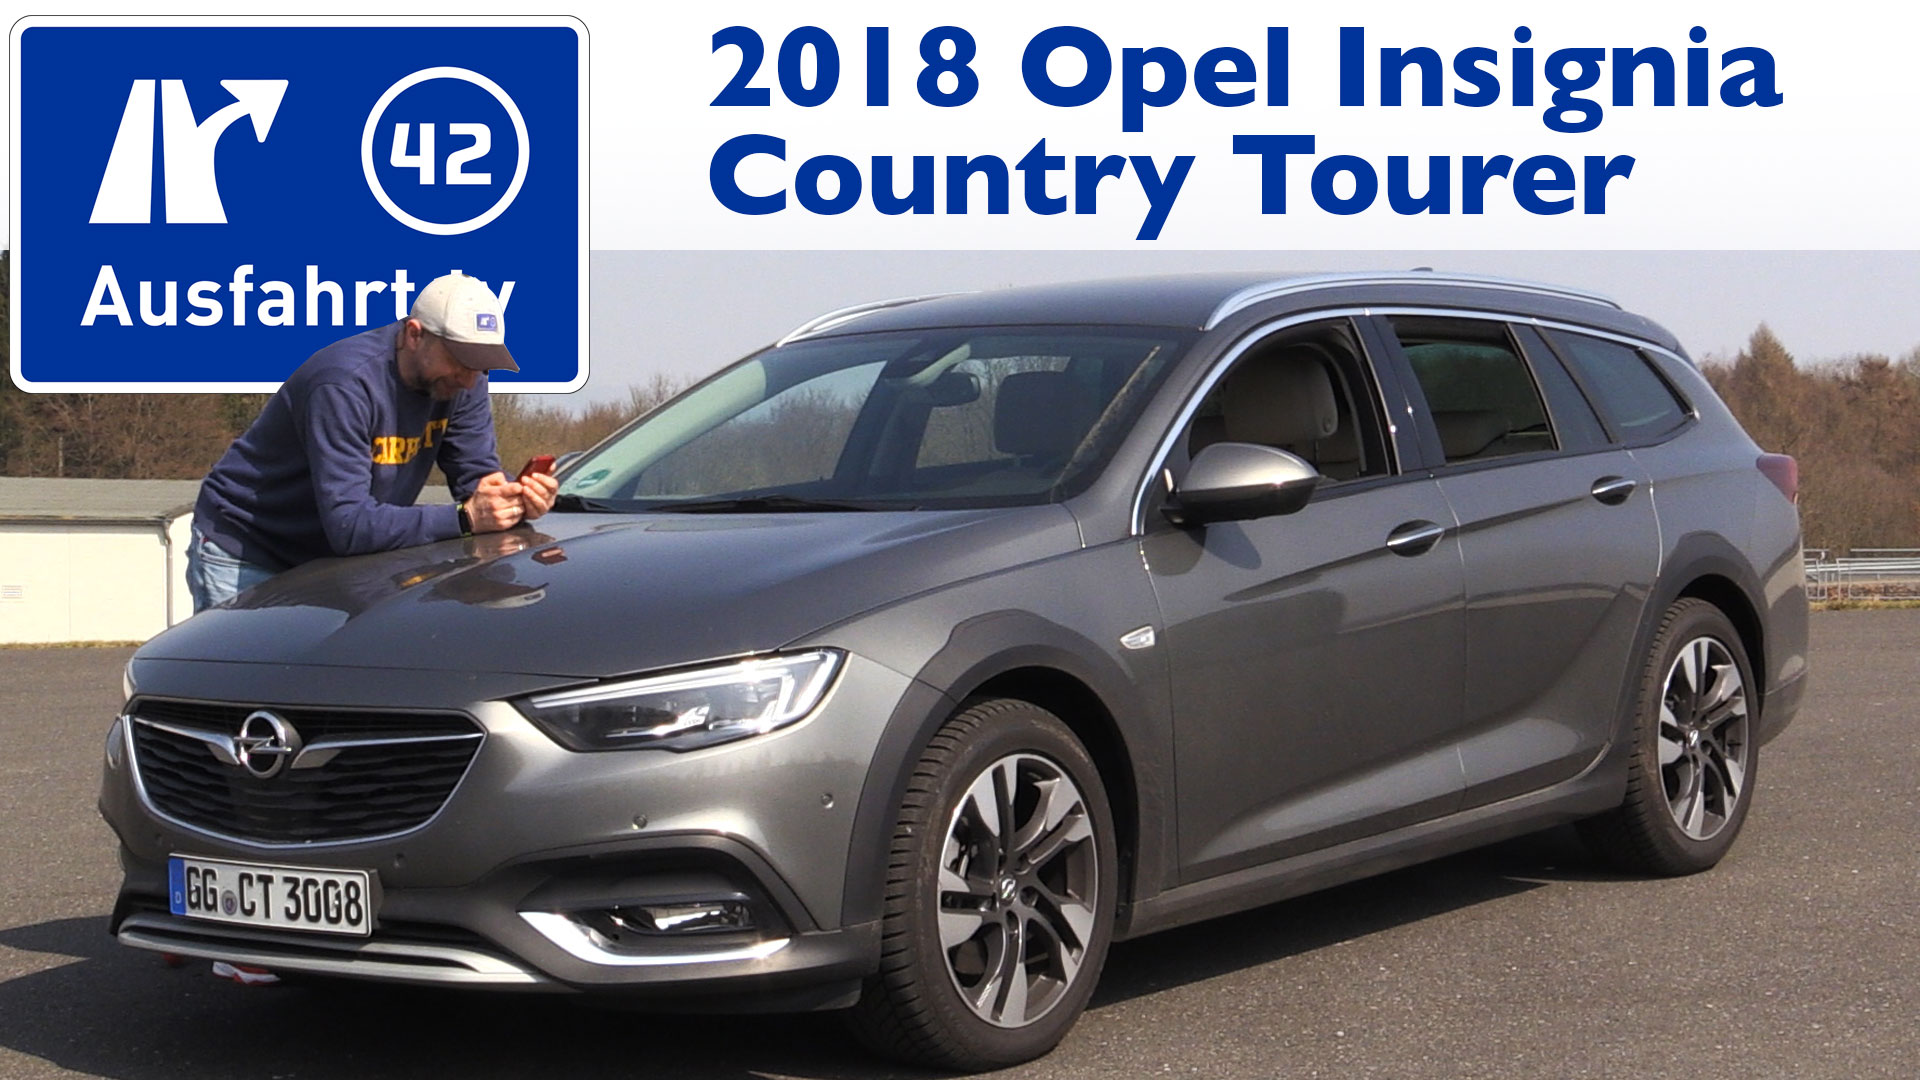 2017 Opel Insignia Sports Tourer 20 Diesel 170 Ps At Innovation 2018 Country Biturbo 210 At8